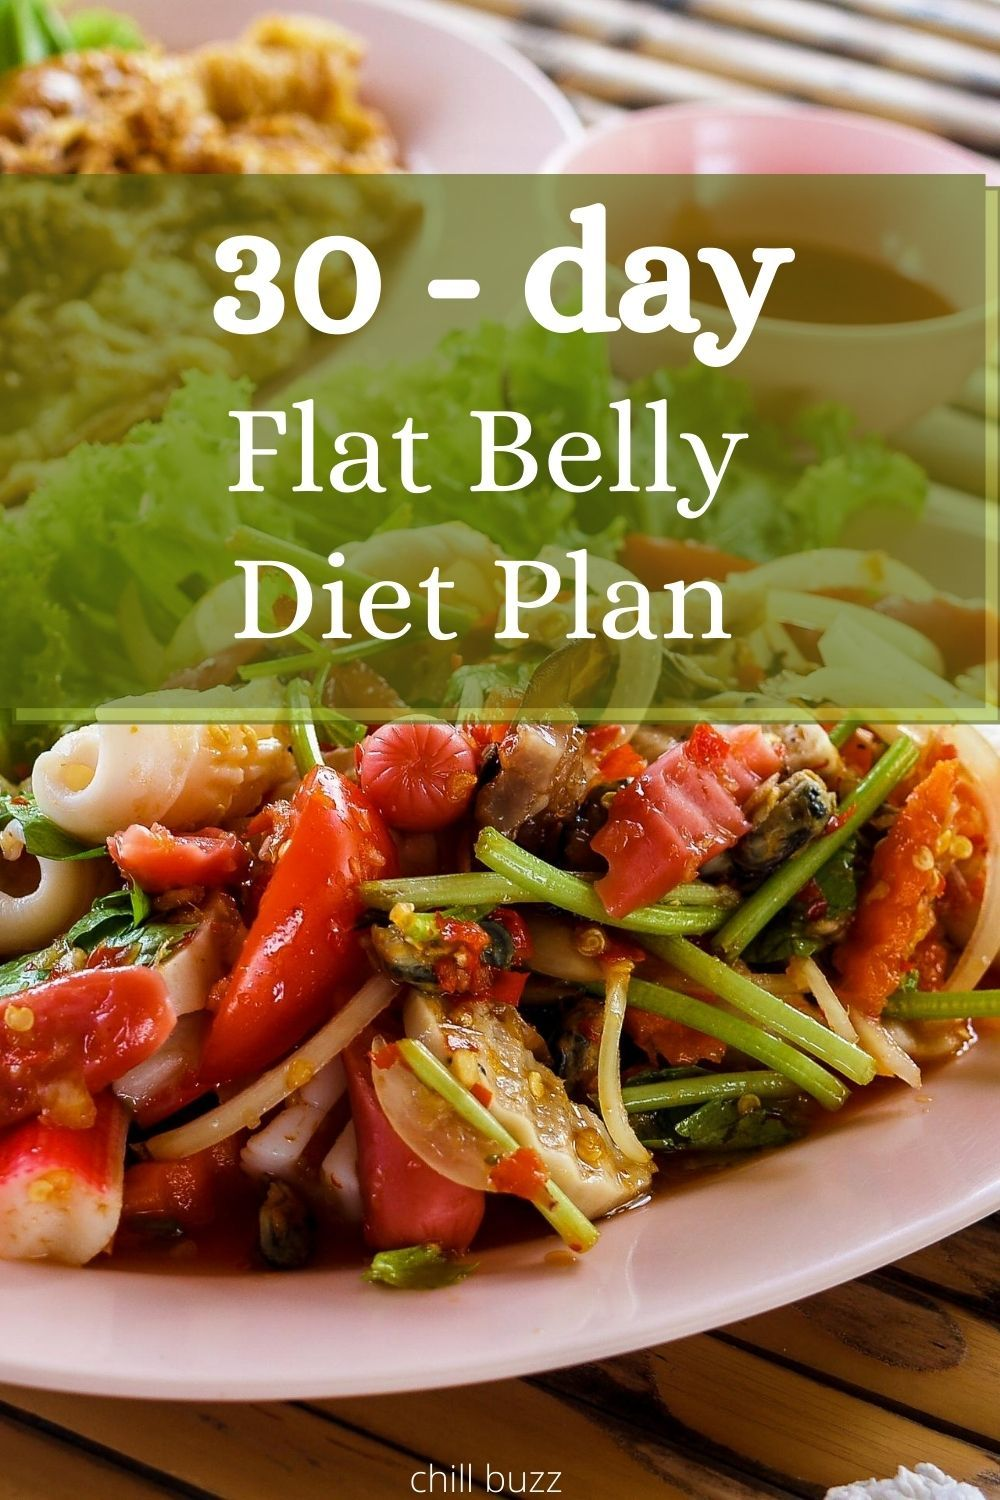 In addition to those research-backed flat-belly foods, this plan includes plenty of fiber and probiotic foods, like kefir and yogurt, that nourish your gut and help the good bacteria thrive. #weightloss #dietrecipes #weightlossrecipes #weightlossideas #diet #dietinspiration #healthyrecipes